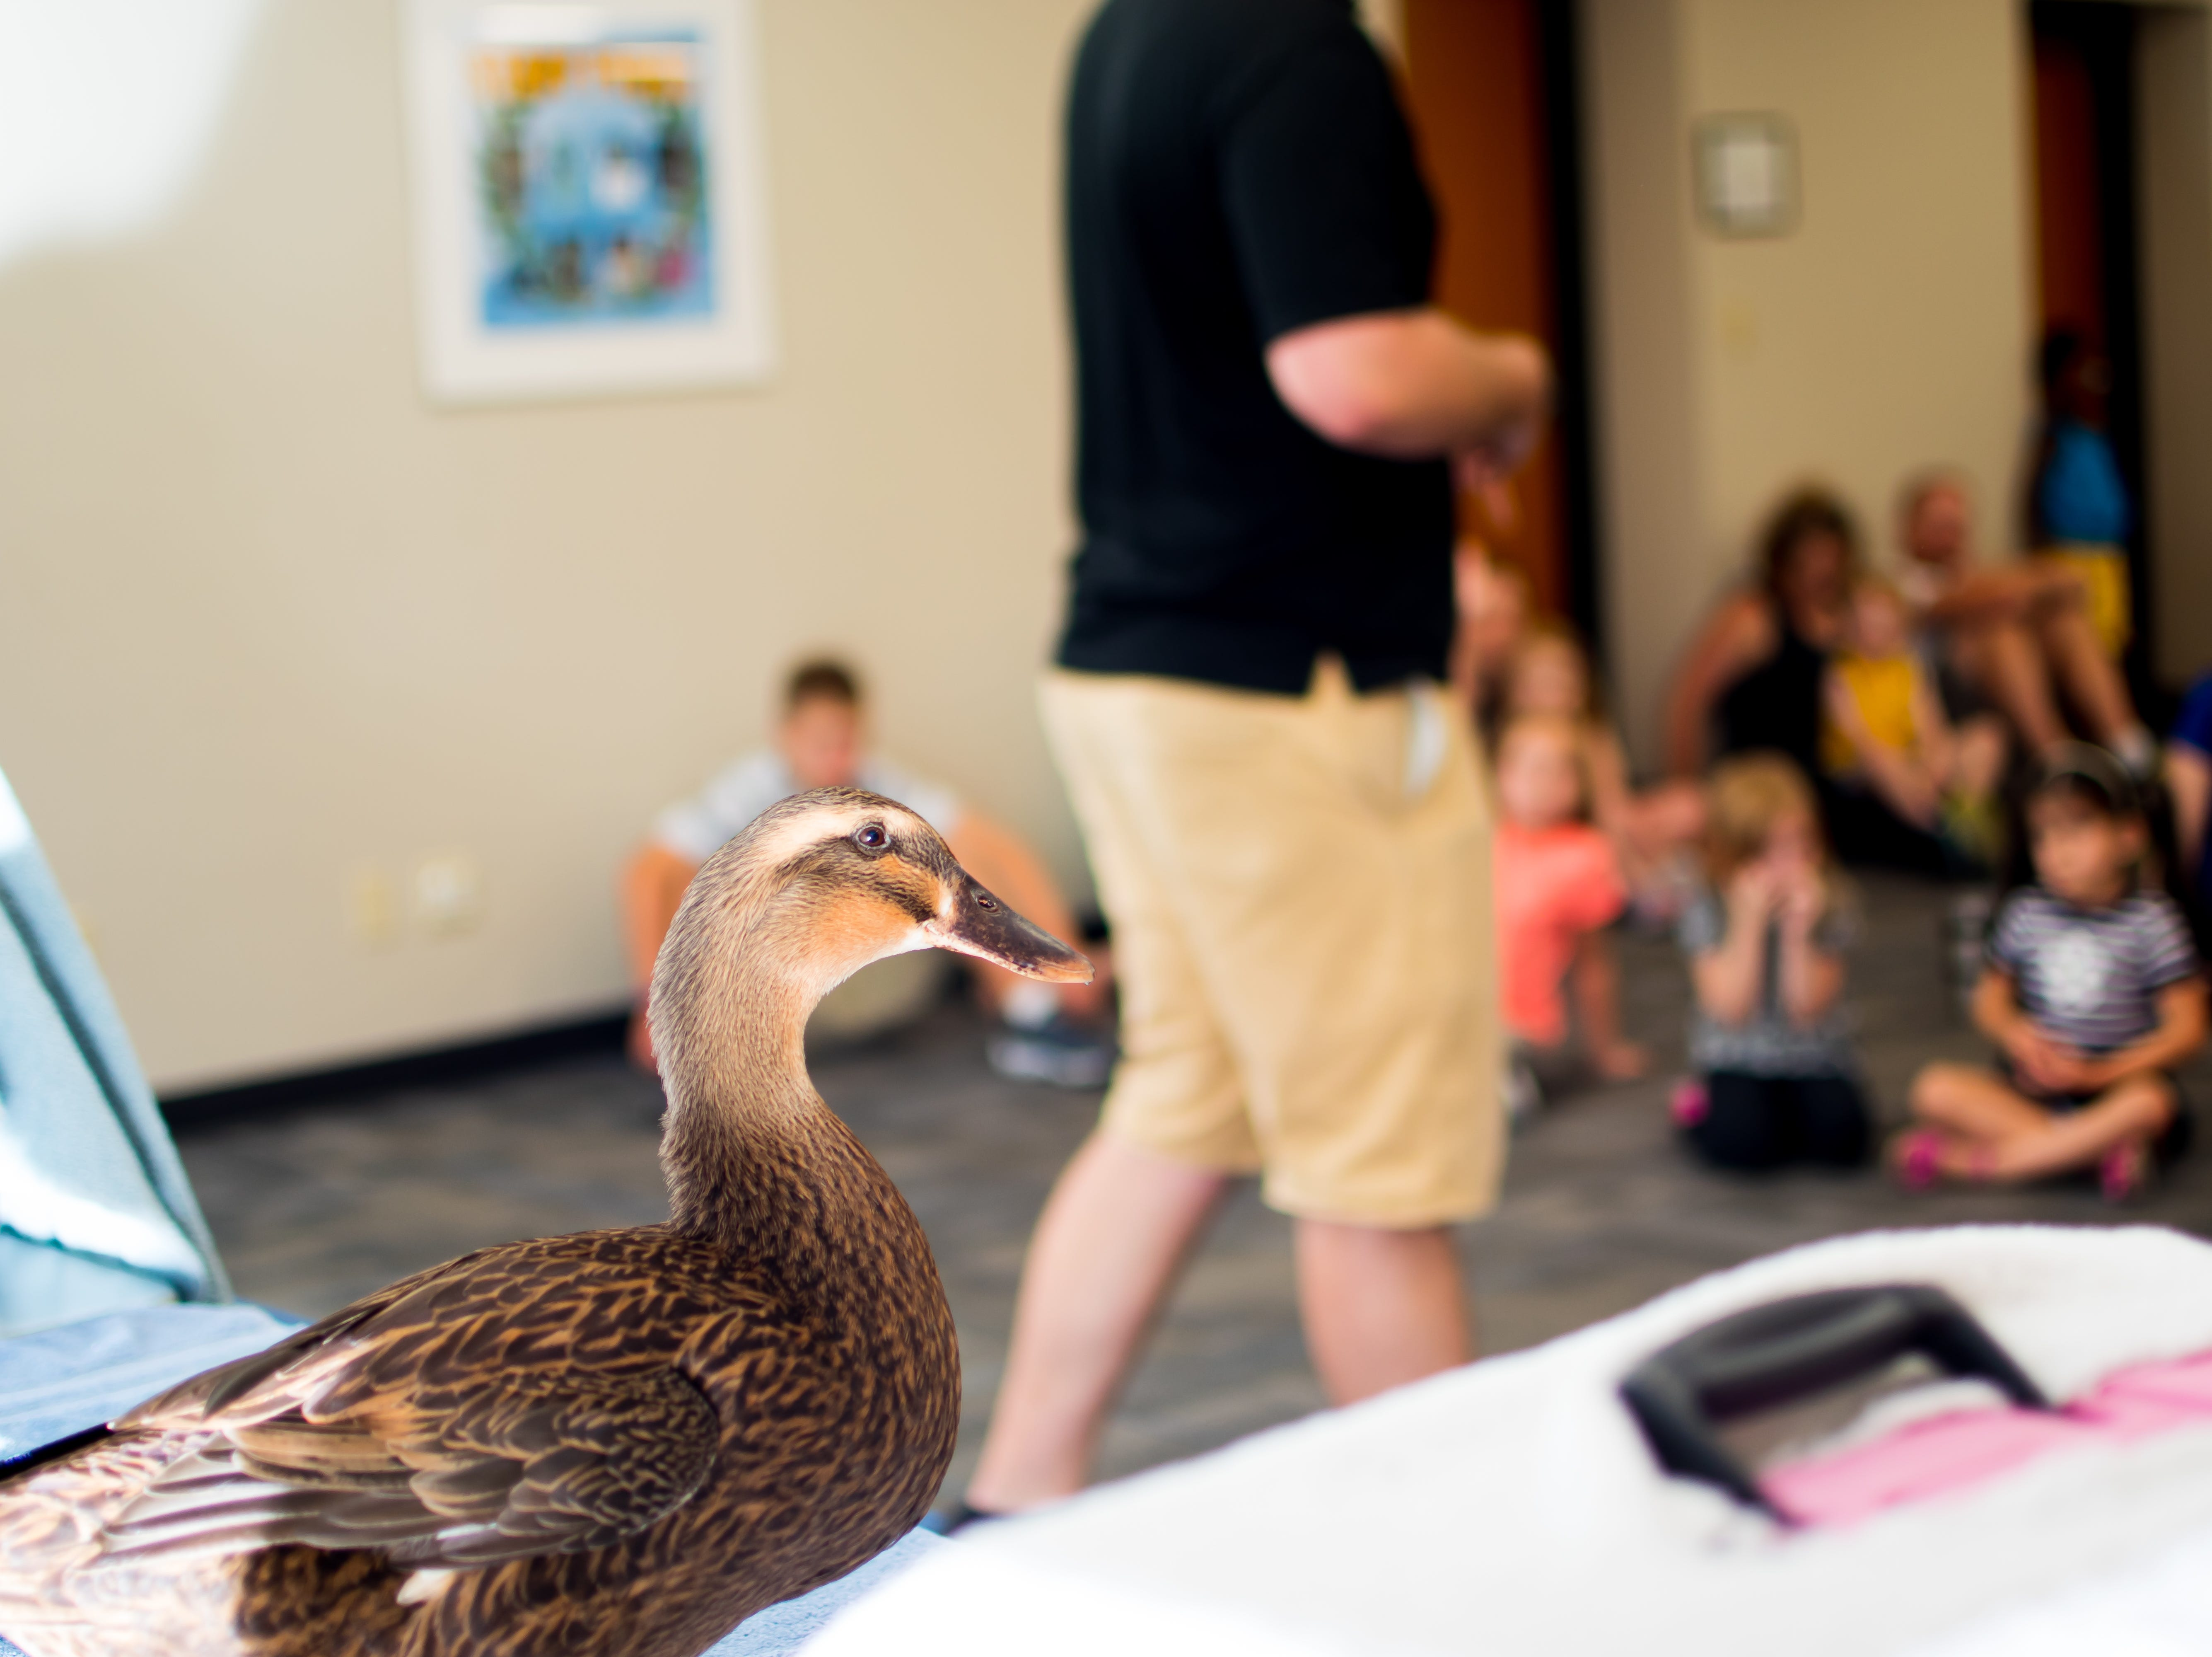 Fiona, a Rouen Duck, from the Blank Park Zoo checks out the families that attend Zoo Show and Tell at the Clive Public Library on Thursday, September 20, 2018 in Clive.